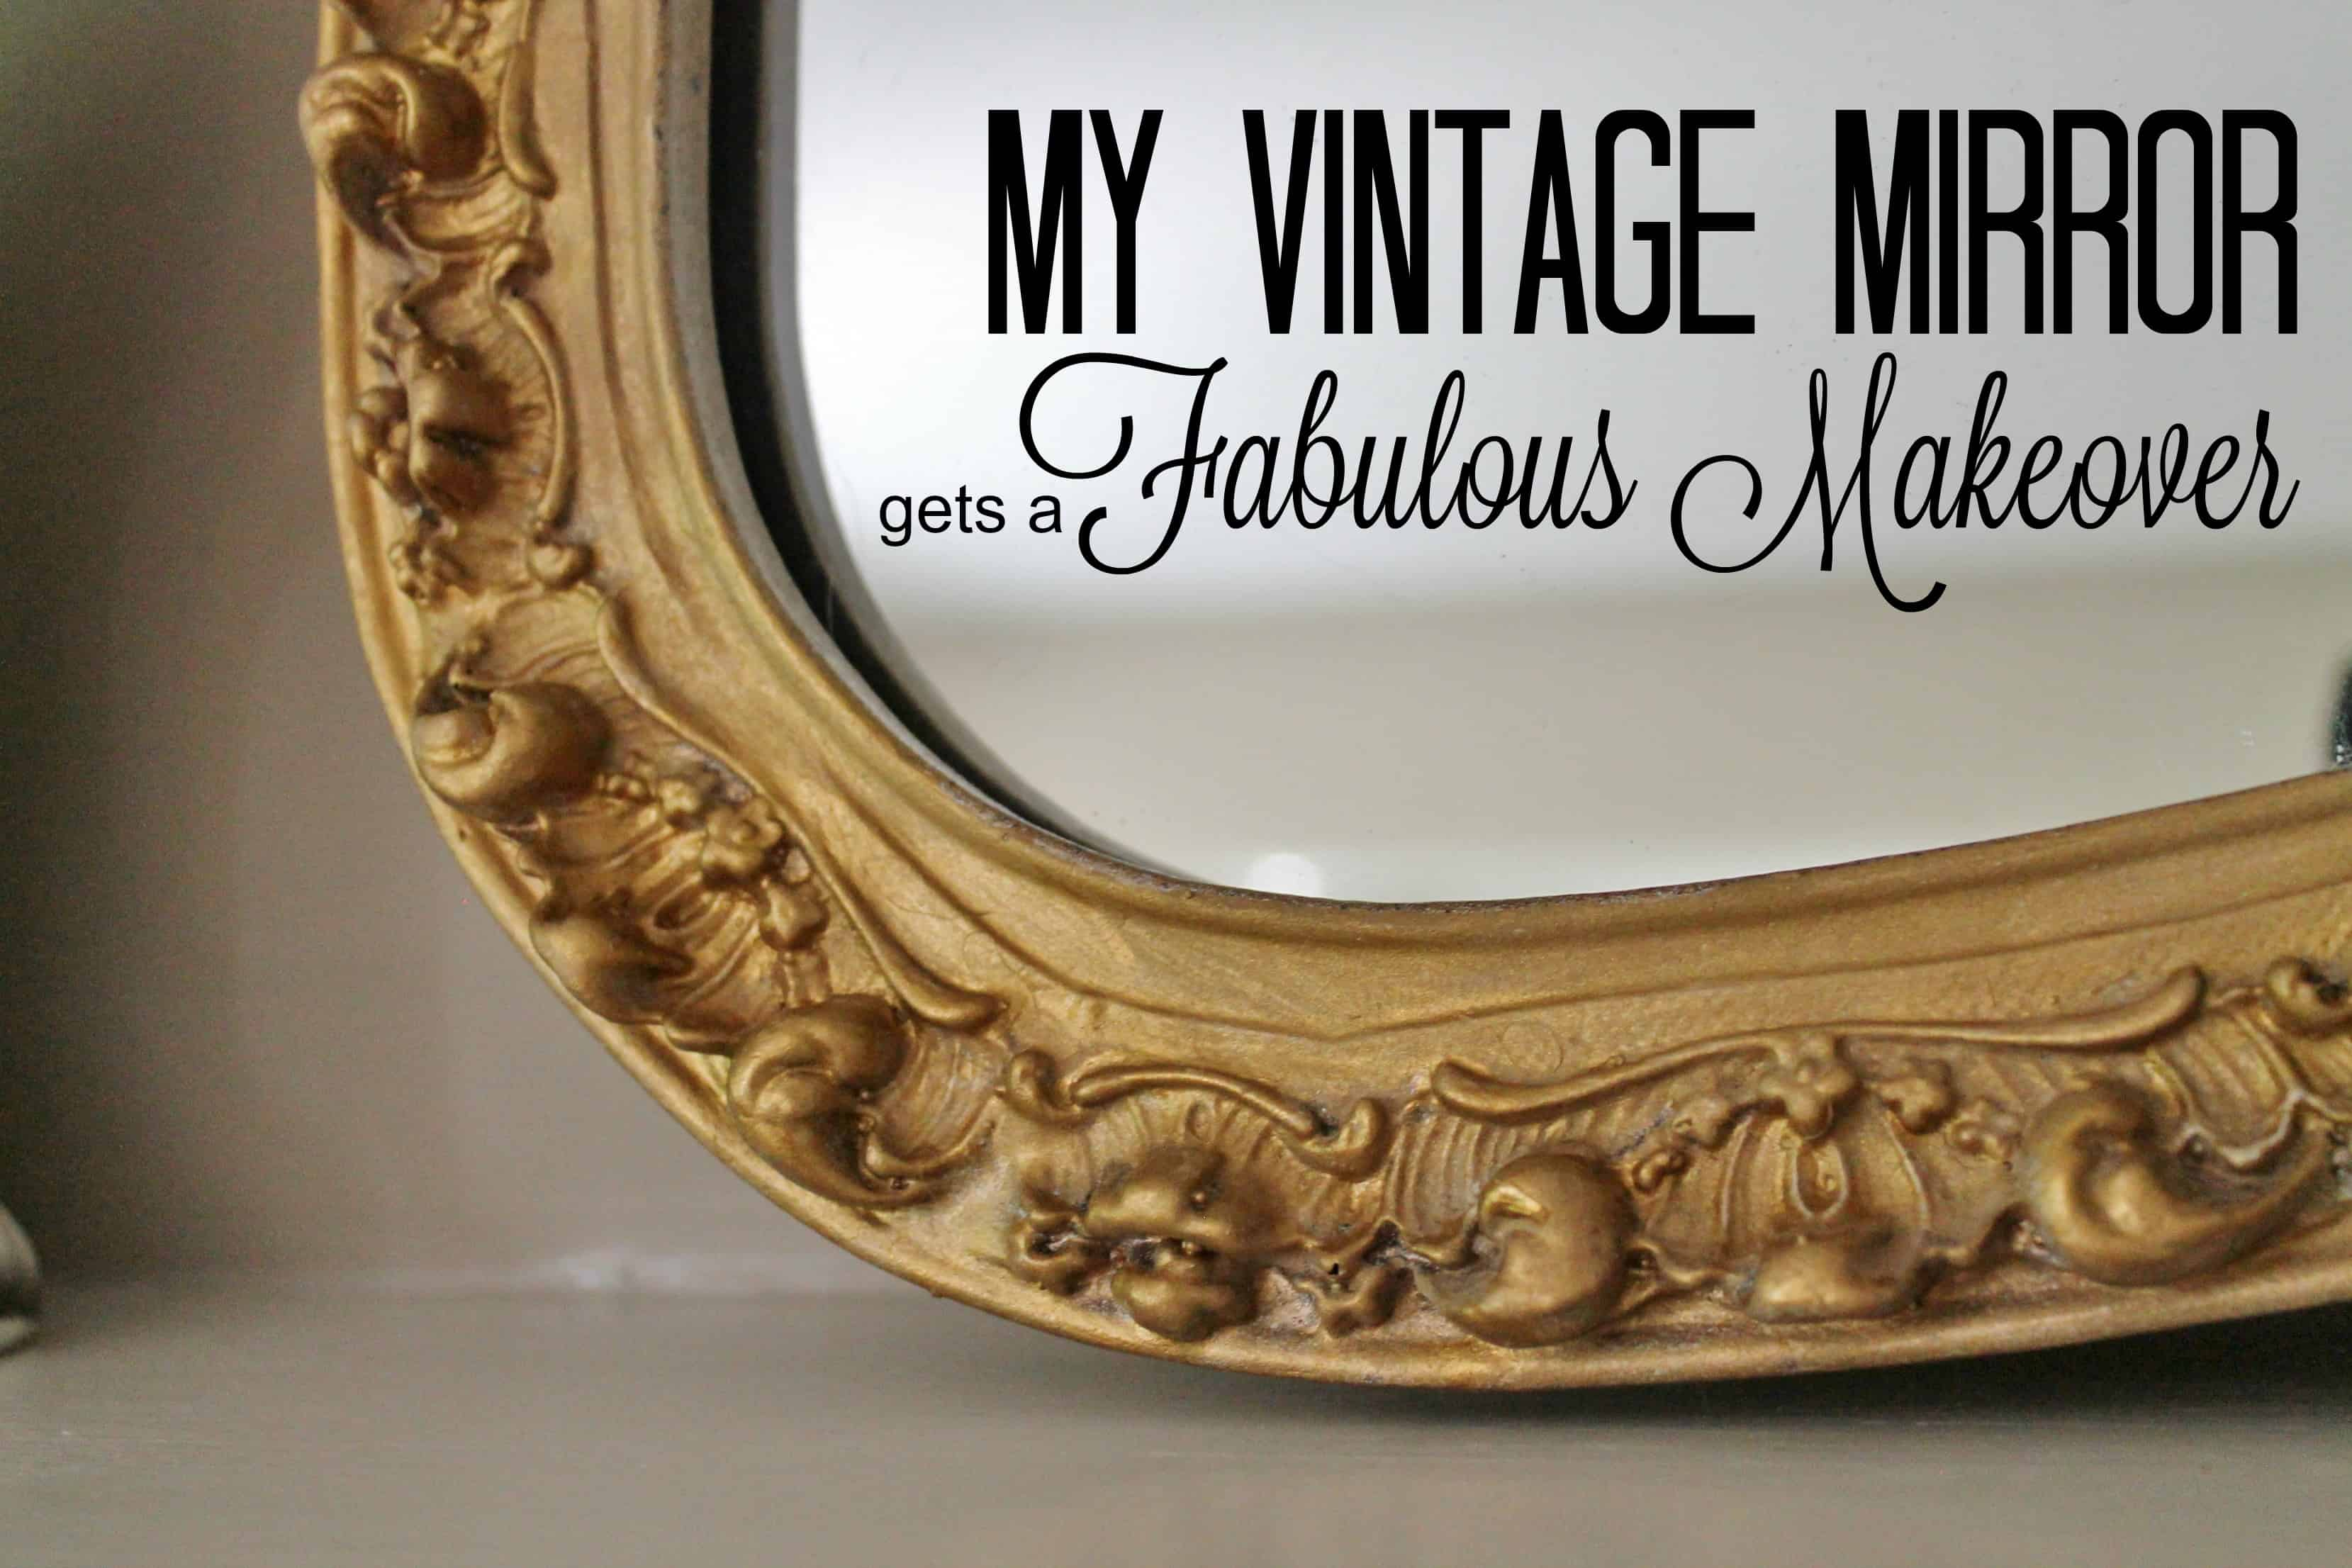 My Vintage Mirror Gets A Fabulous Makeover Adirondack Girl Heart